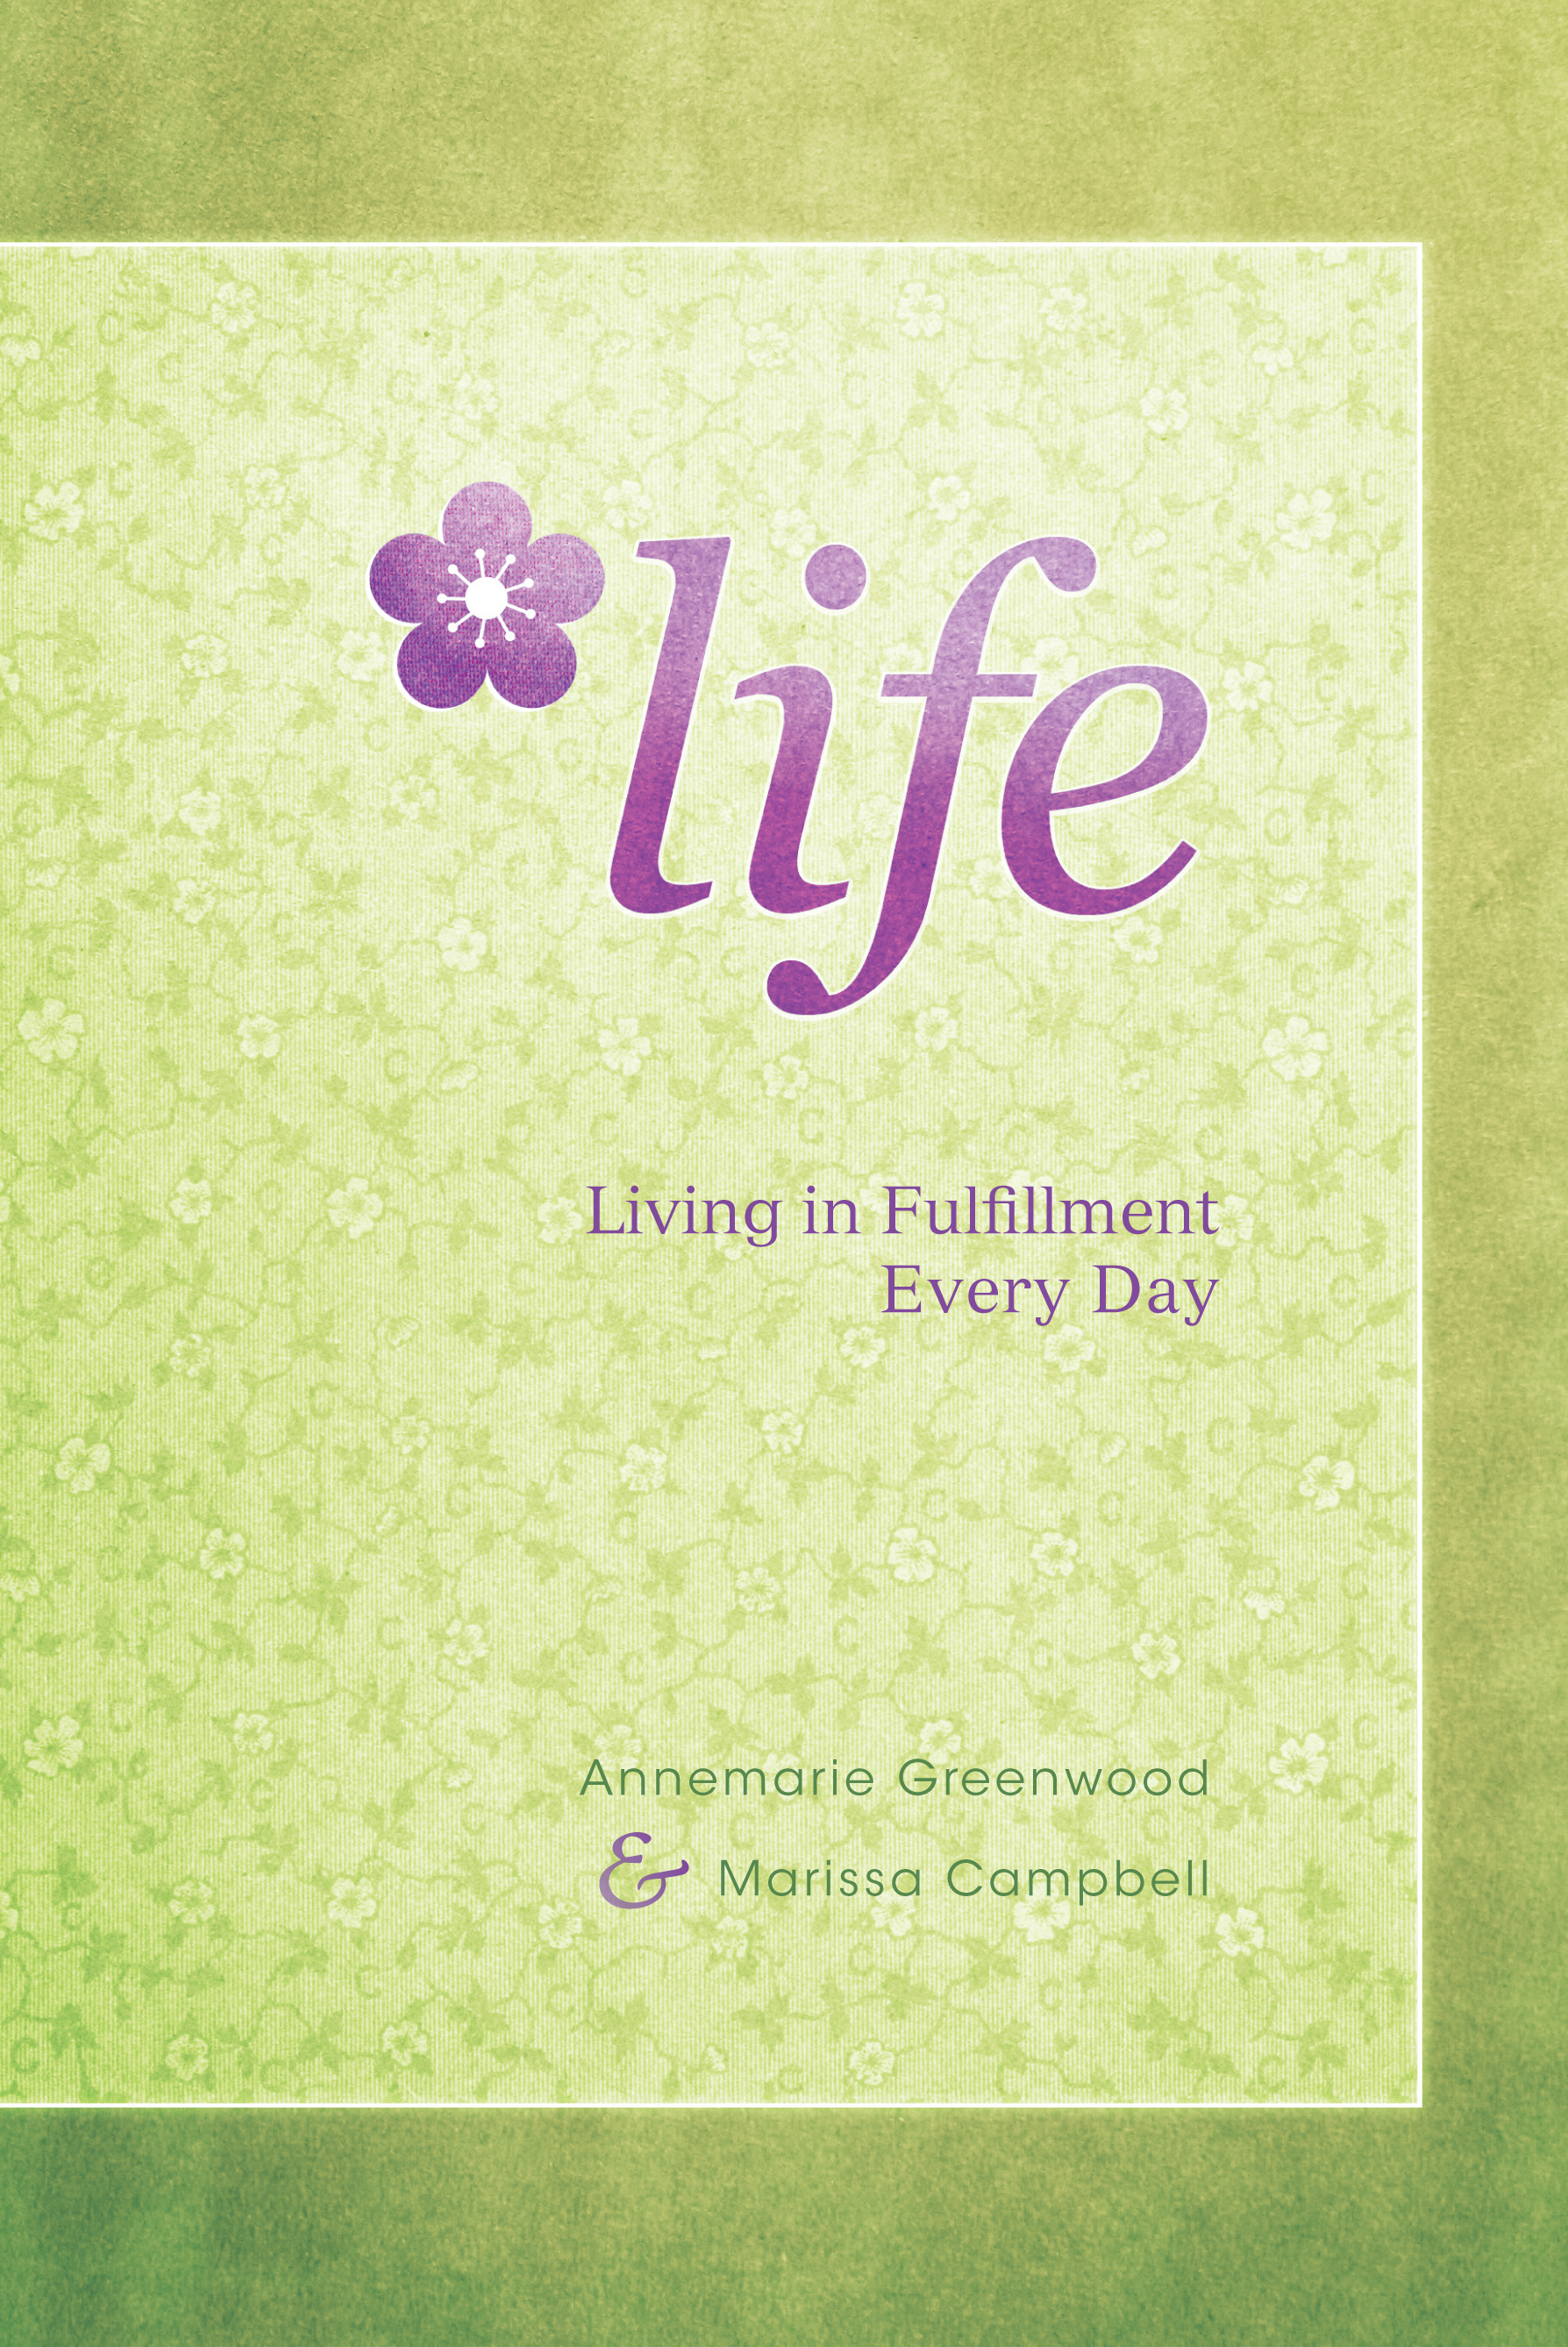 Life: Living in Fulfillment Every Day